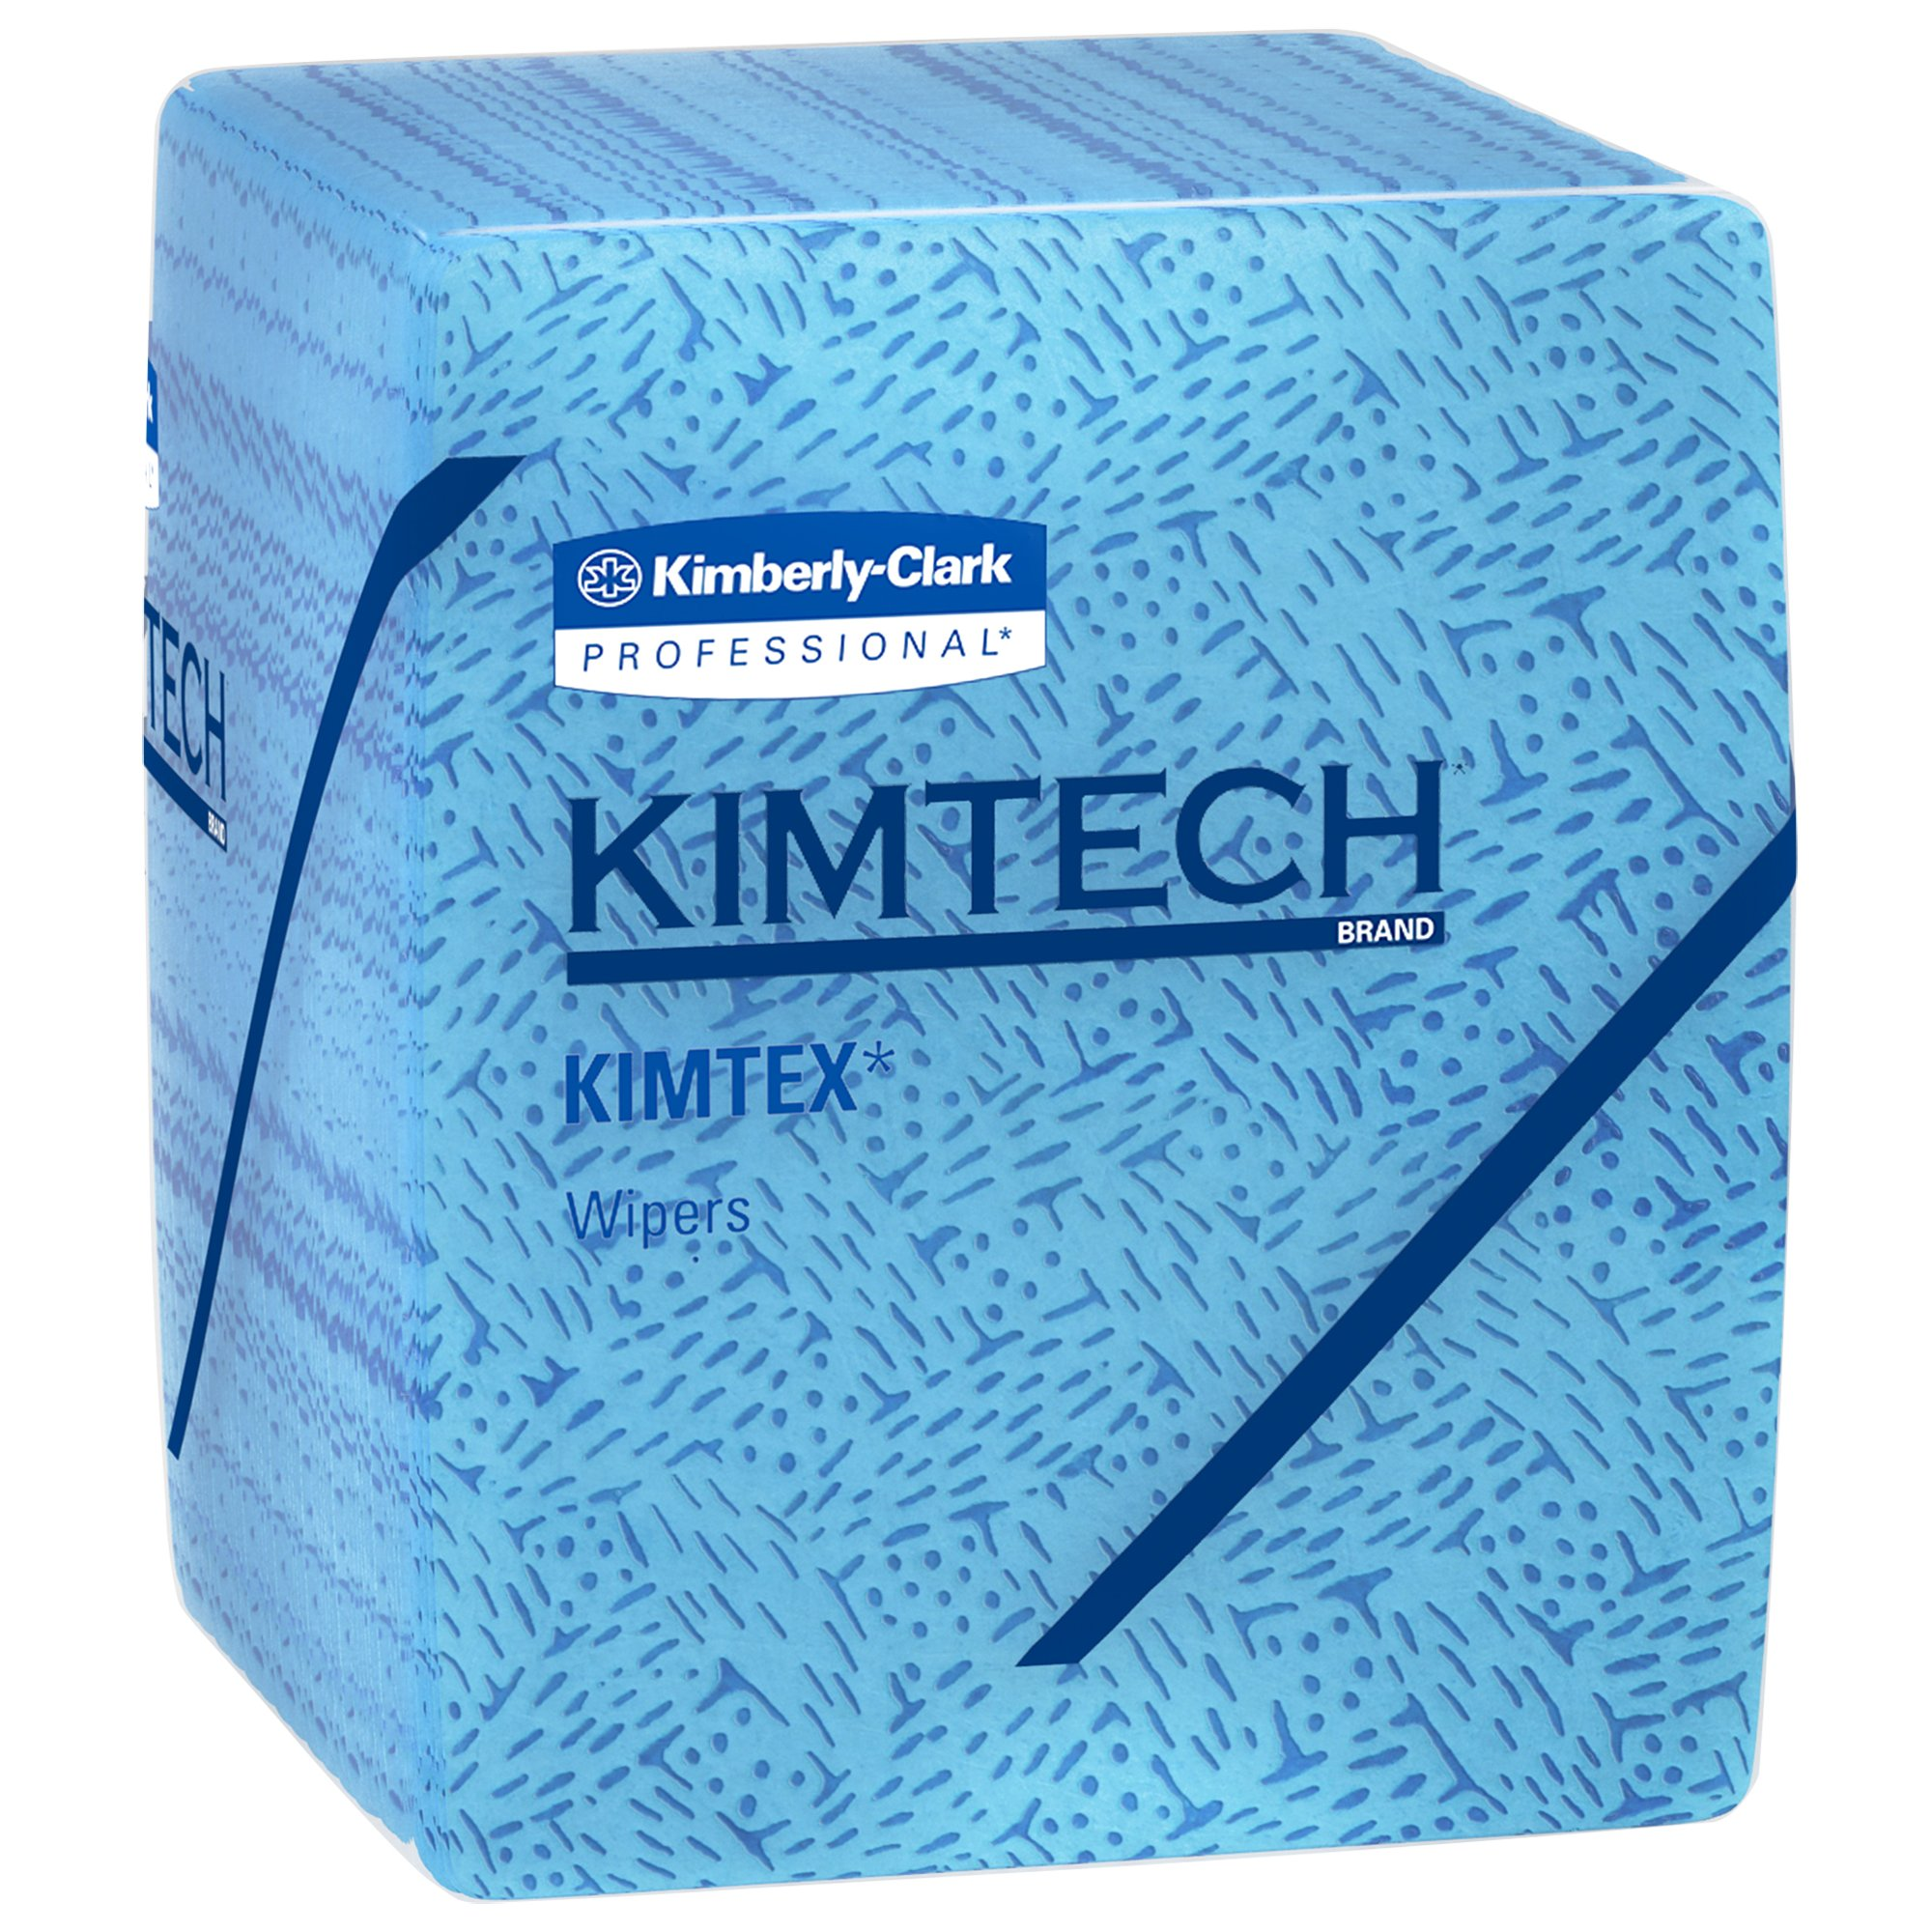 Kimtech Industrial Cleaning Wipes, Disposable, Low Lint Quarterfold Wipes (33560), 8 Packs/Case, 66 Sheets/Pack